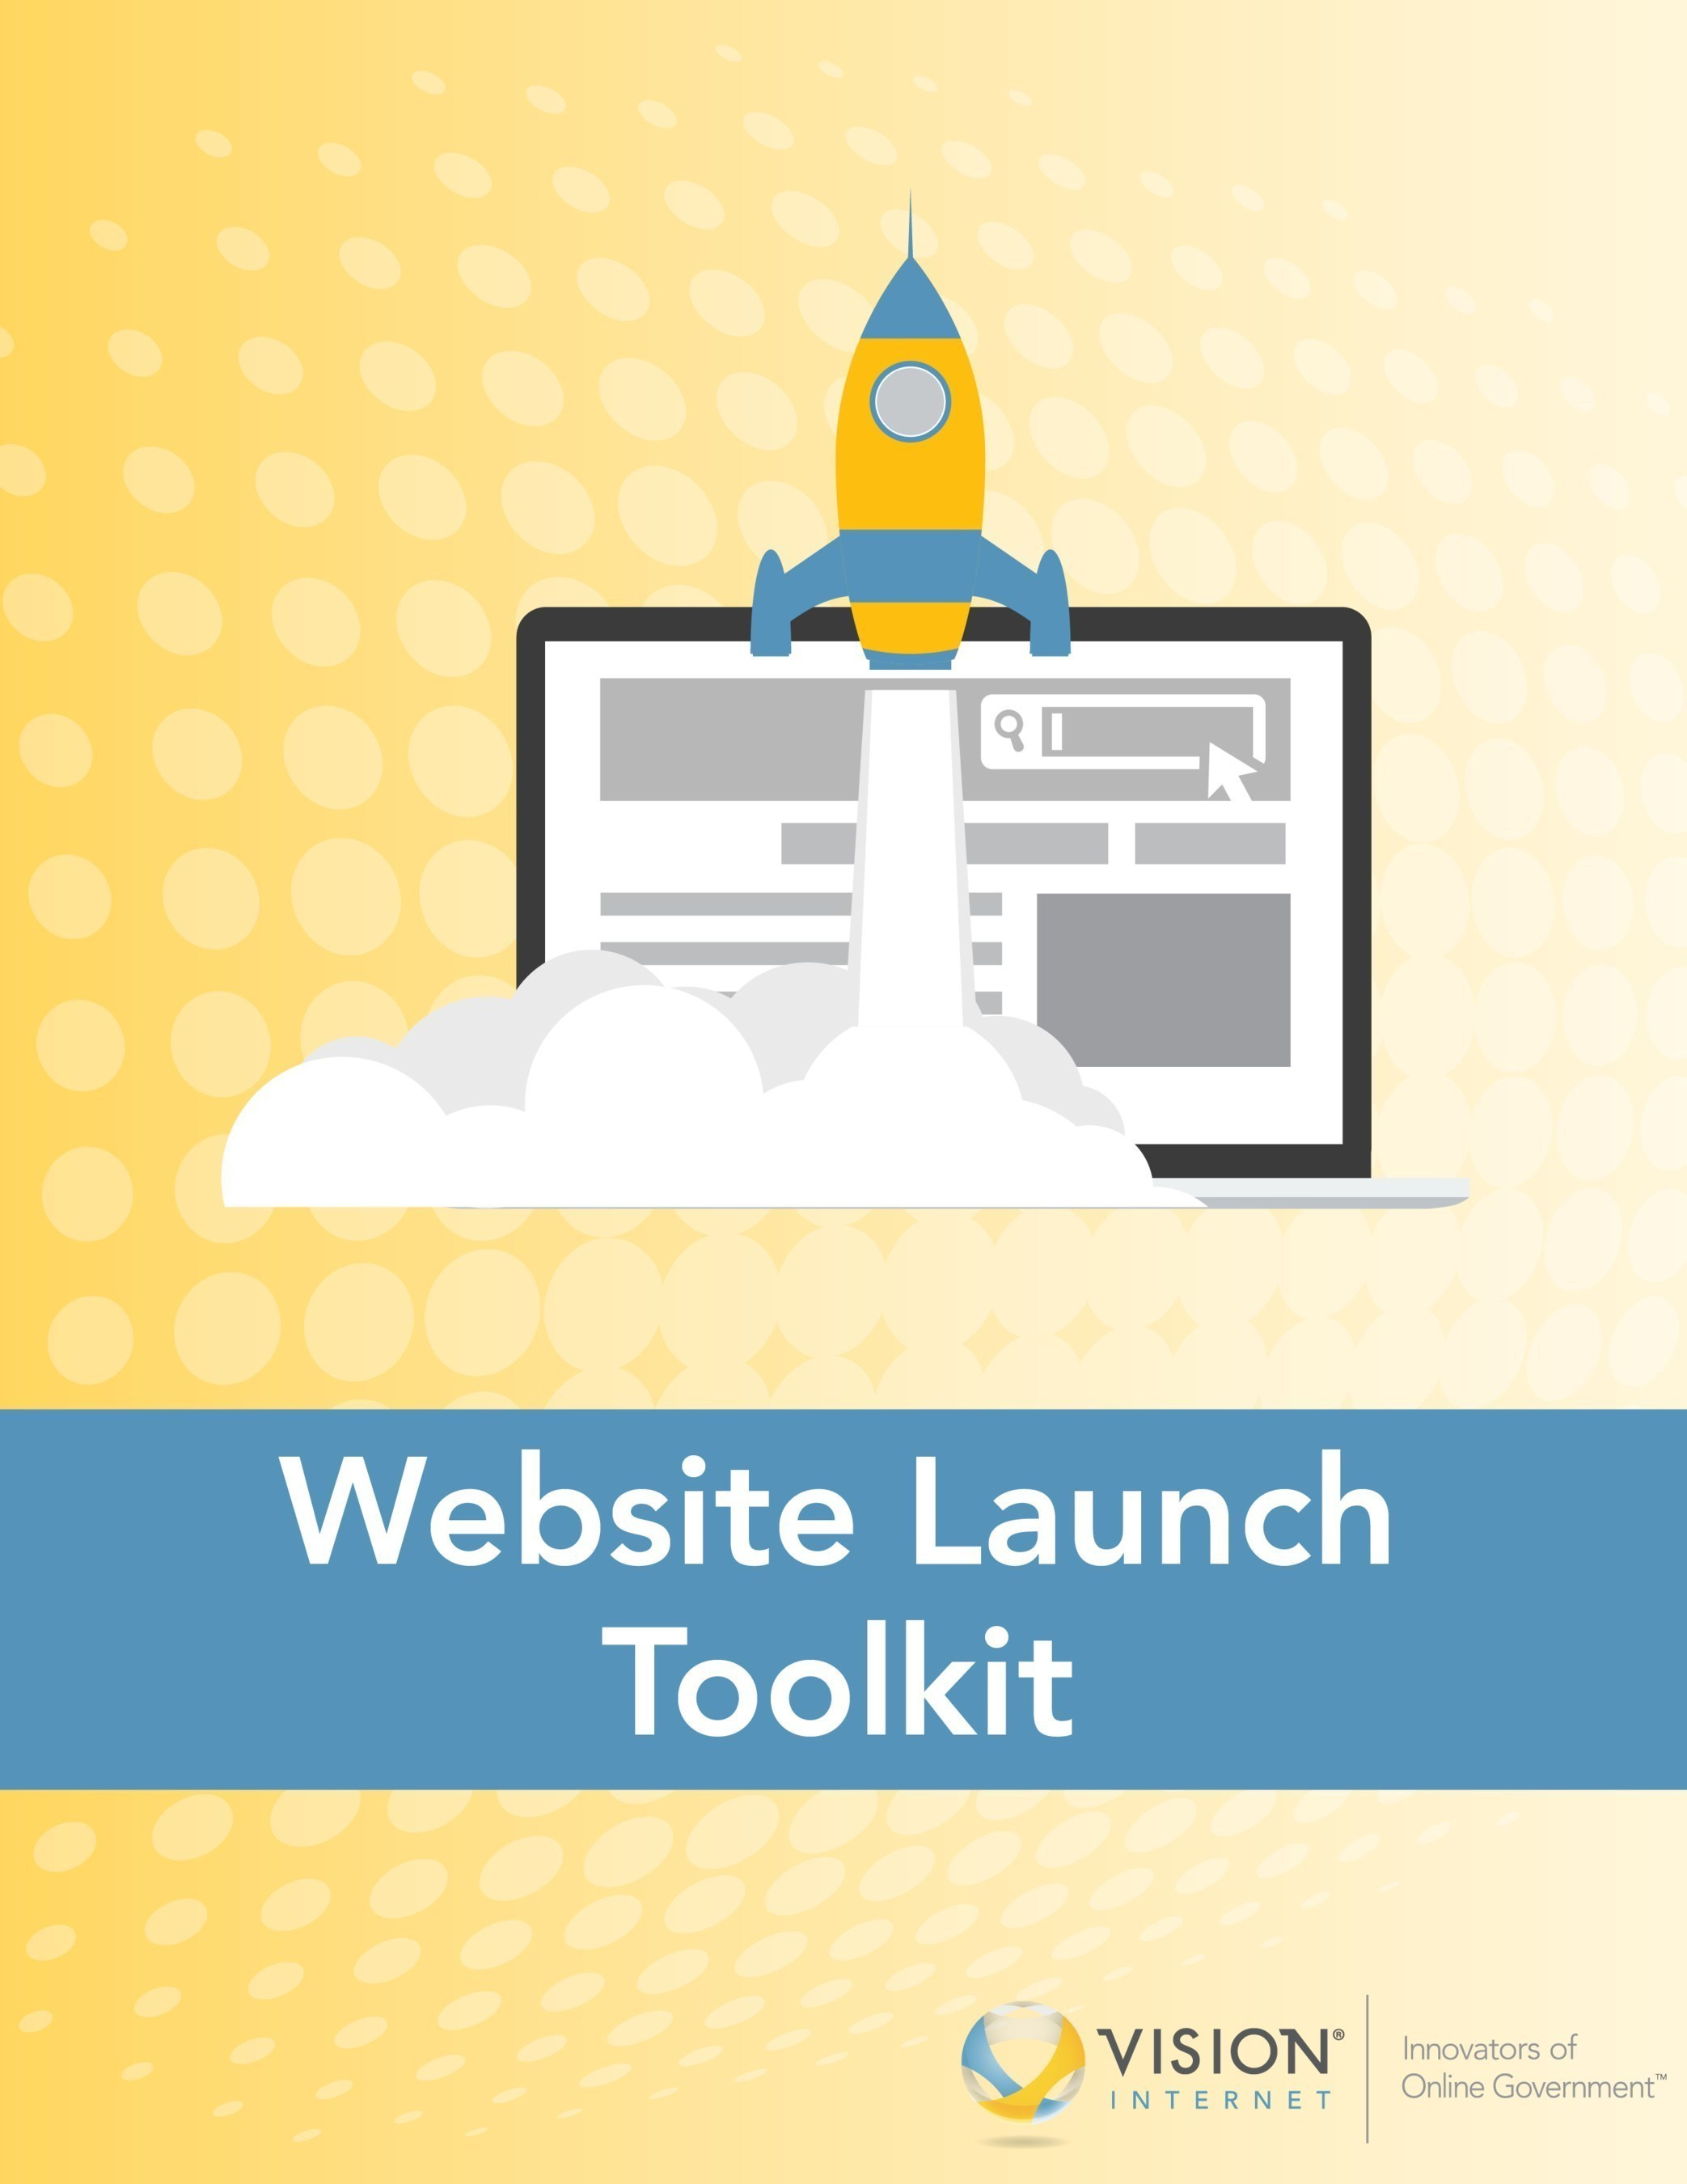 Launching a New Local Government Website? Vision Internet Offers Tips, Best Practices in Website